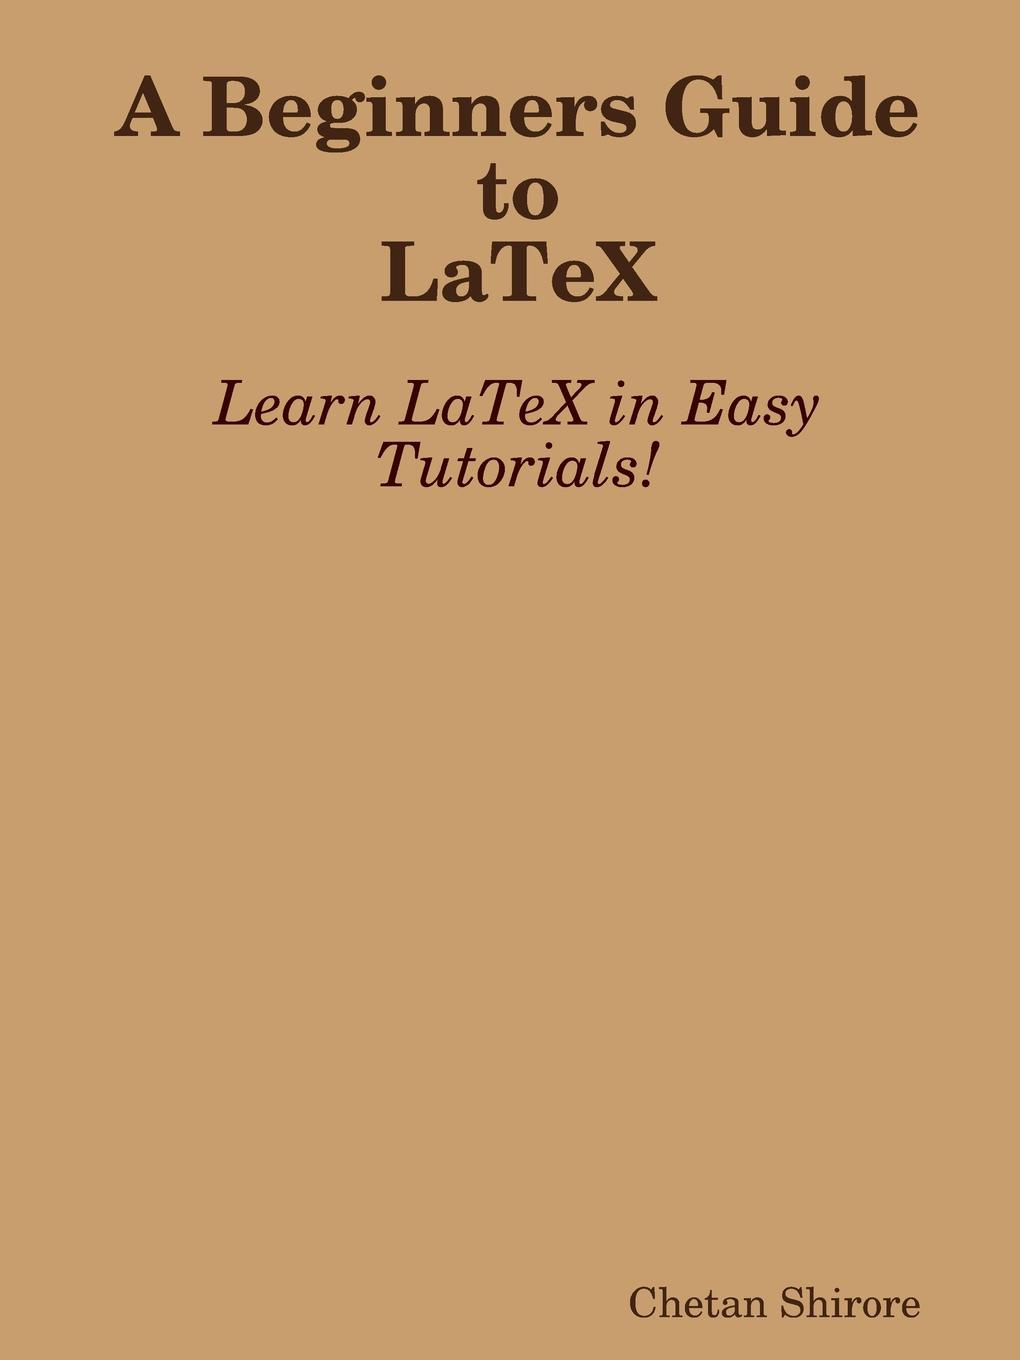 Chetan Shirore A Beginners Guide to Latex the conran beginners guide to decorating